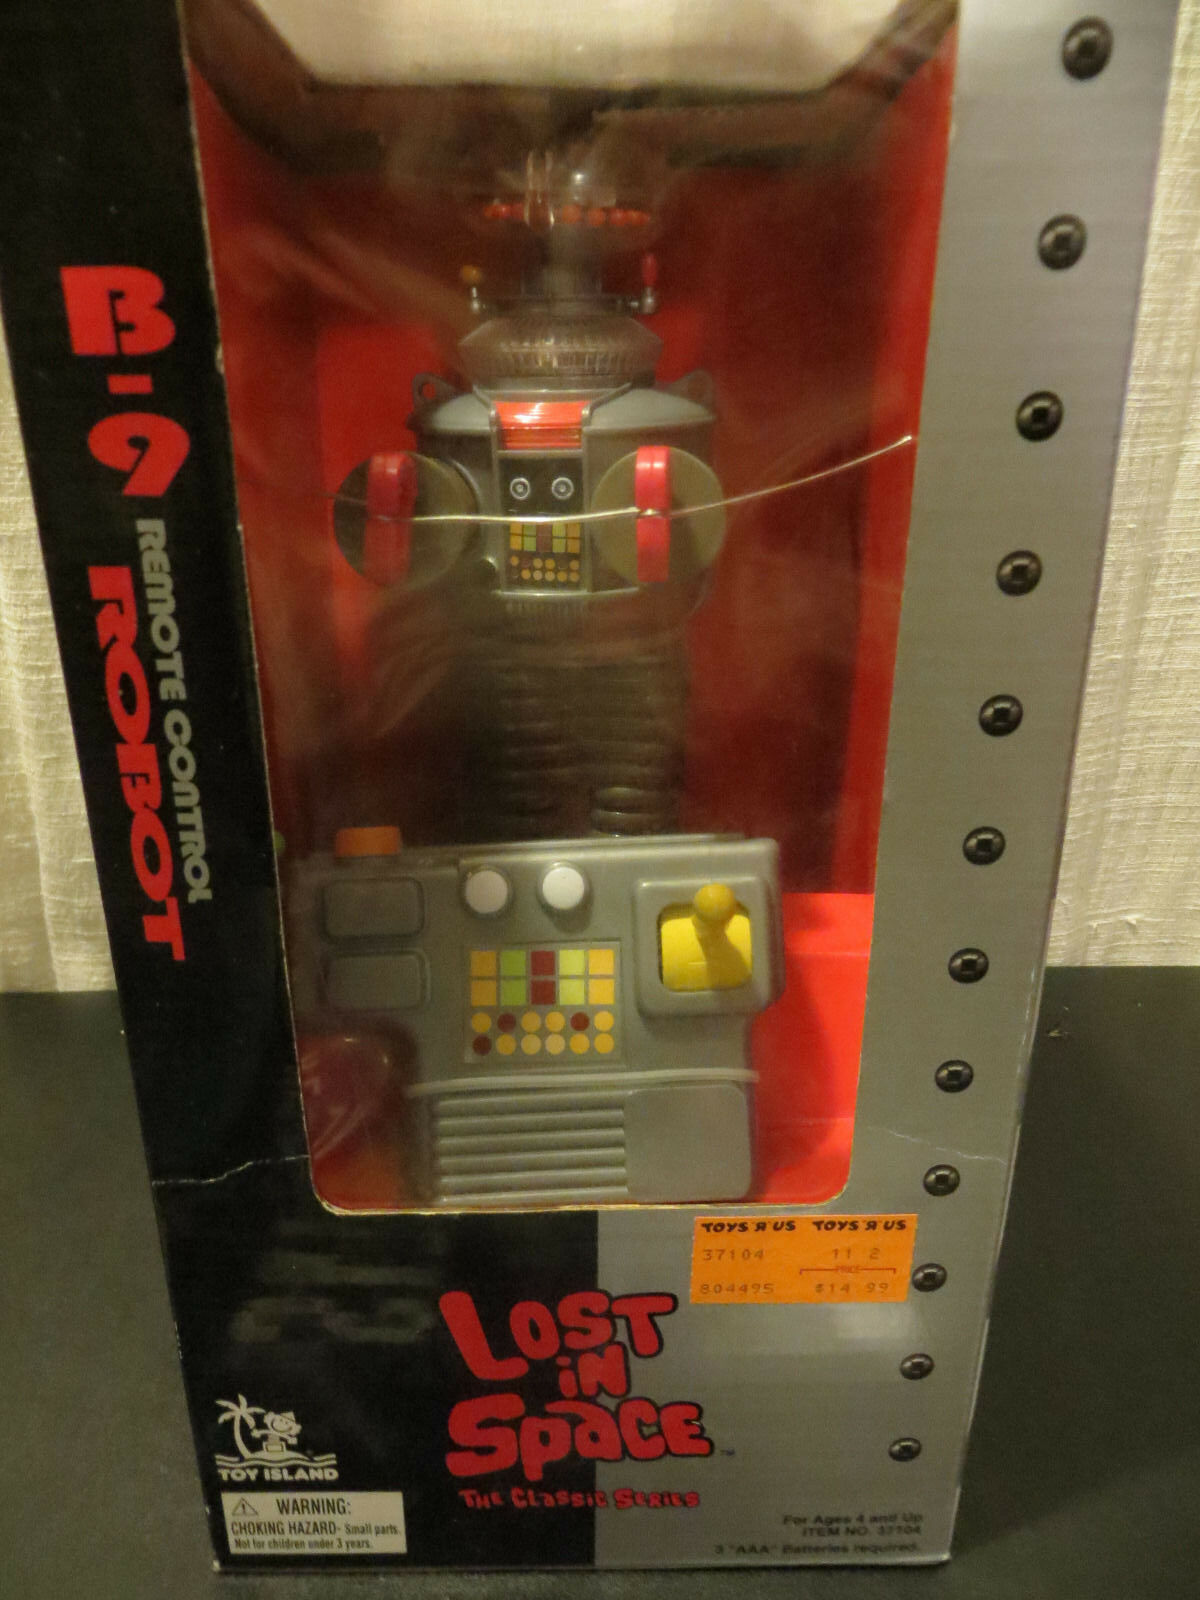 Toy Island Lost in Space Classic Series B-9 Remote Control Robot